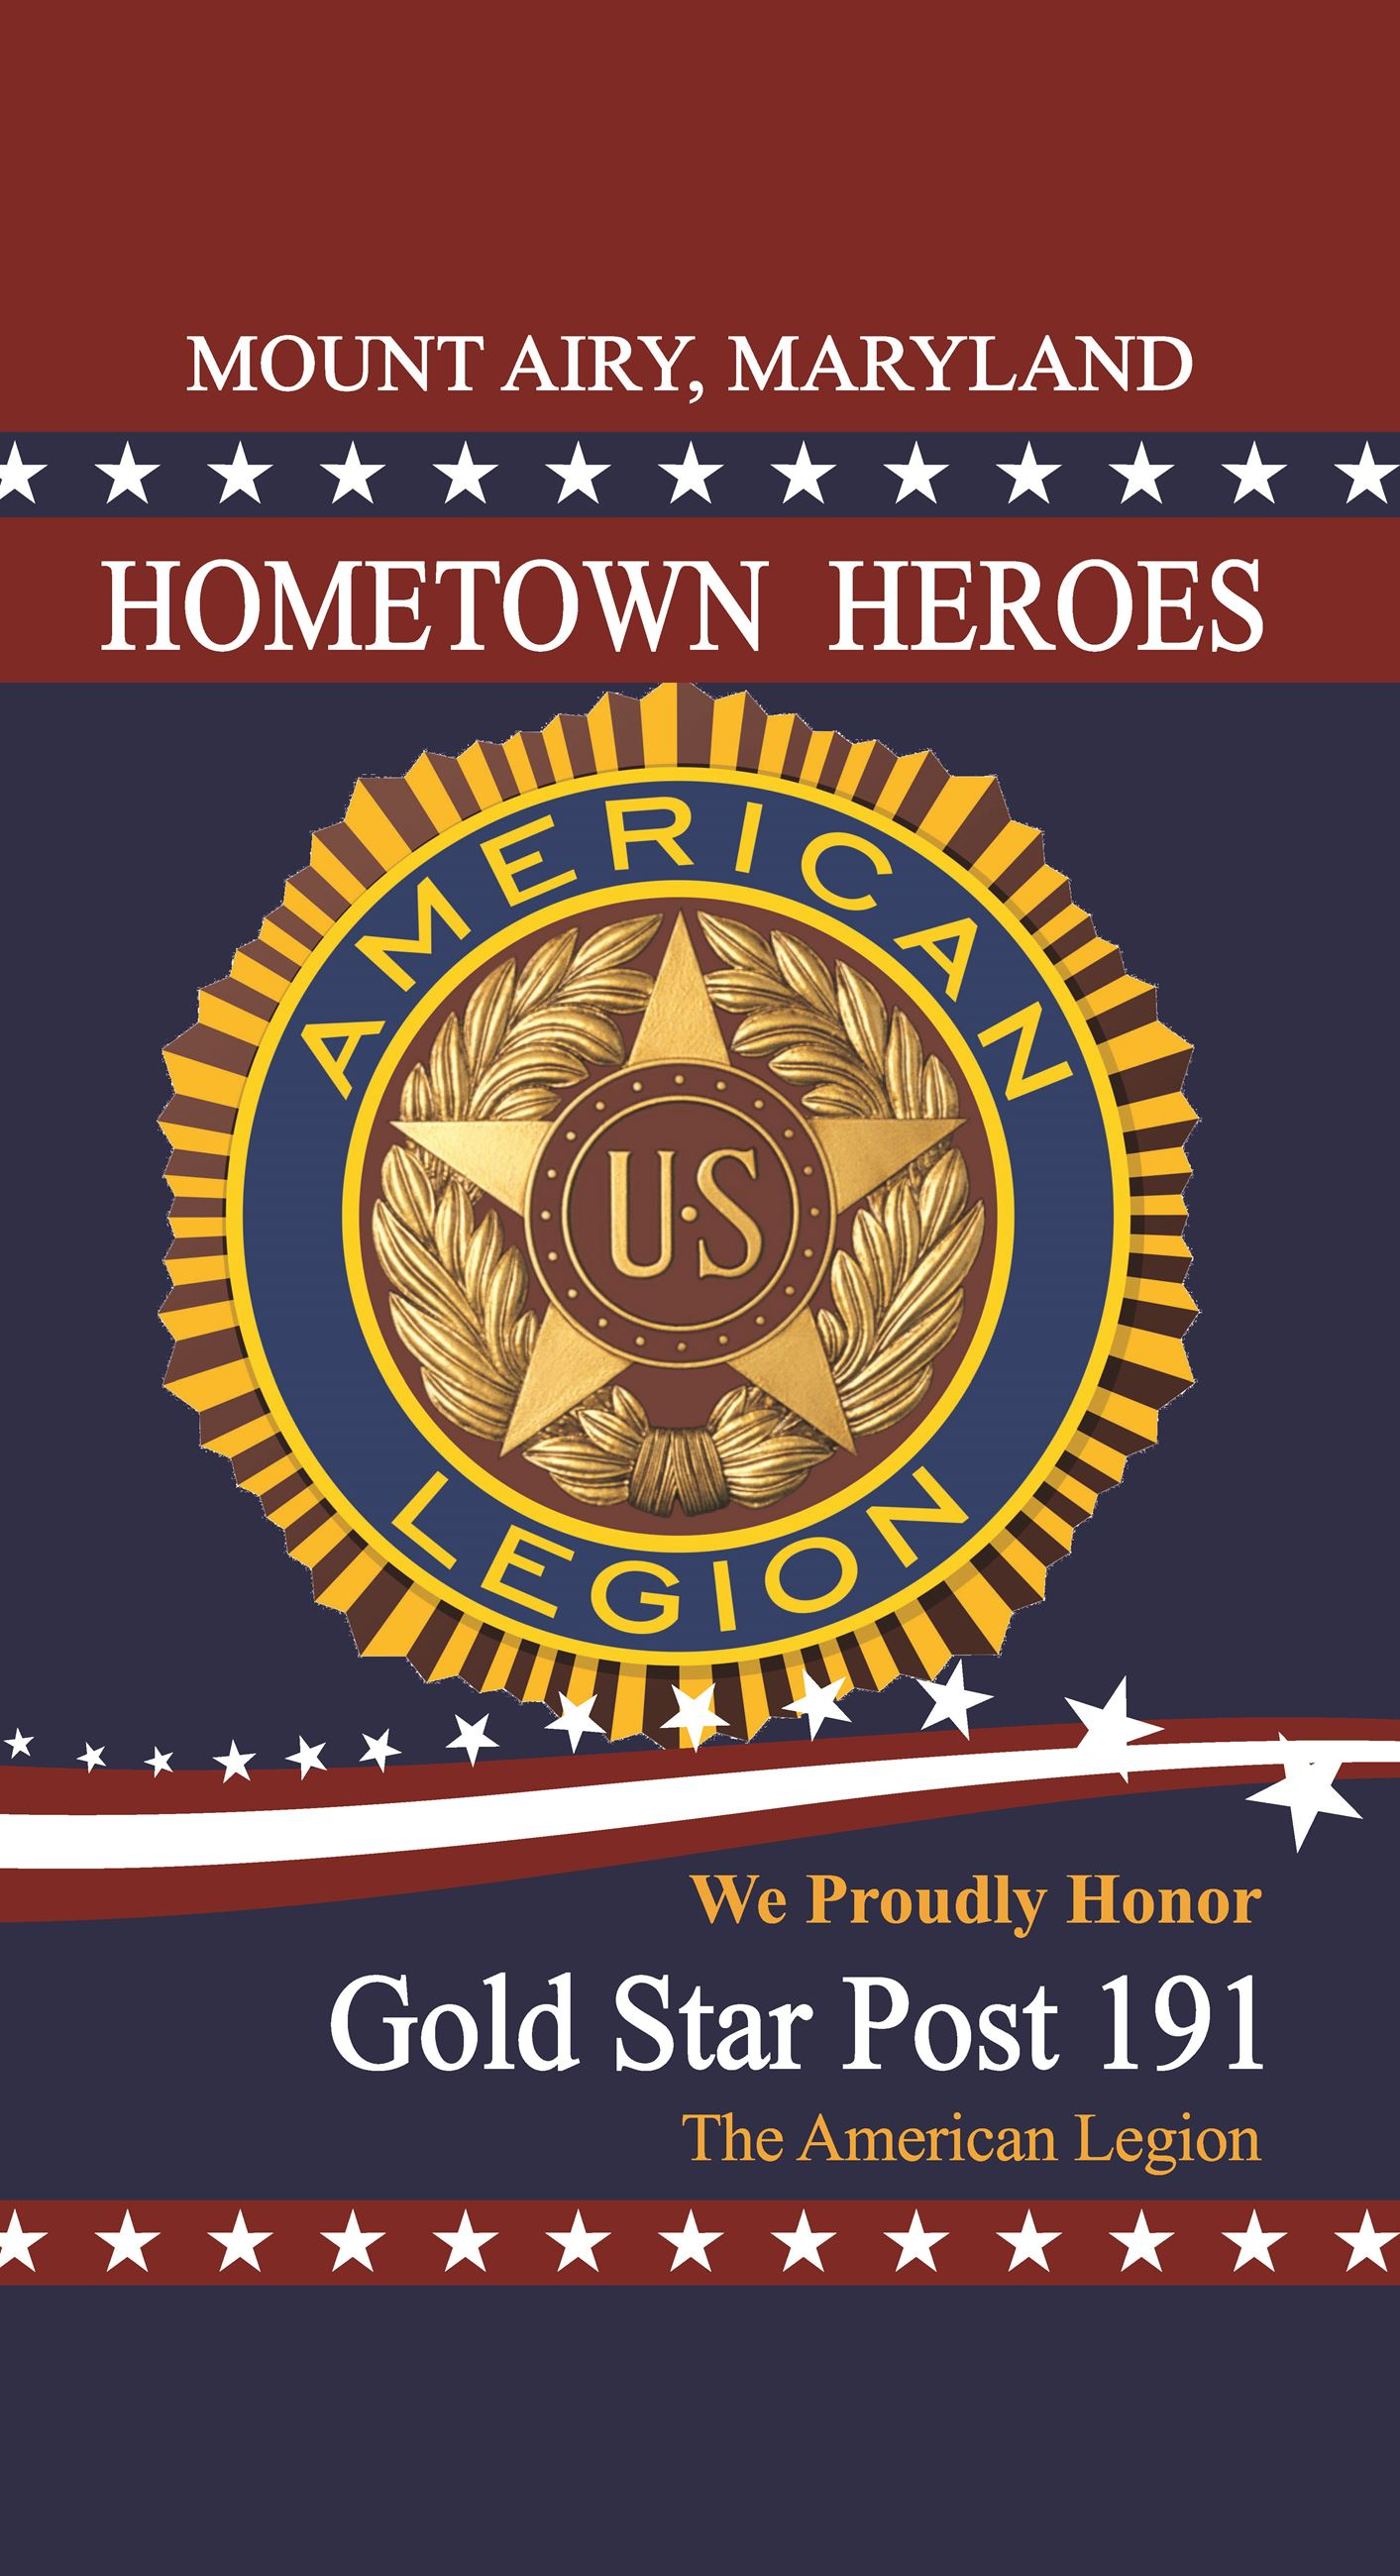 GoldStarPost191_MtAiryHeroes-Flag-24x44-Proof001